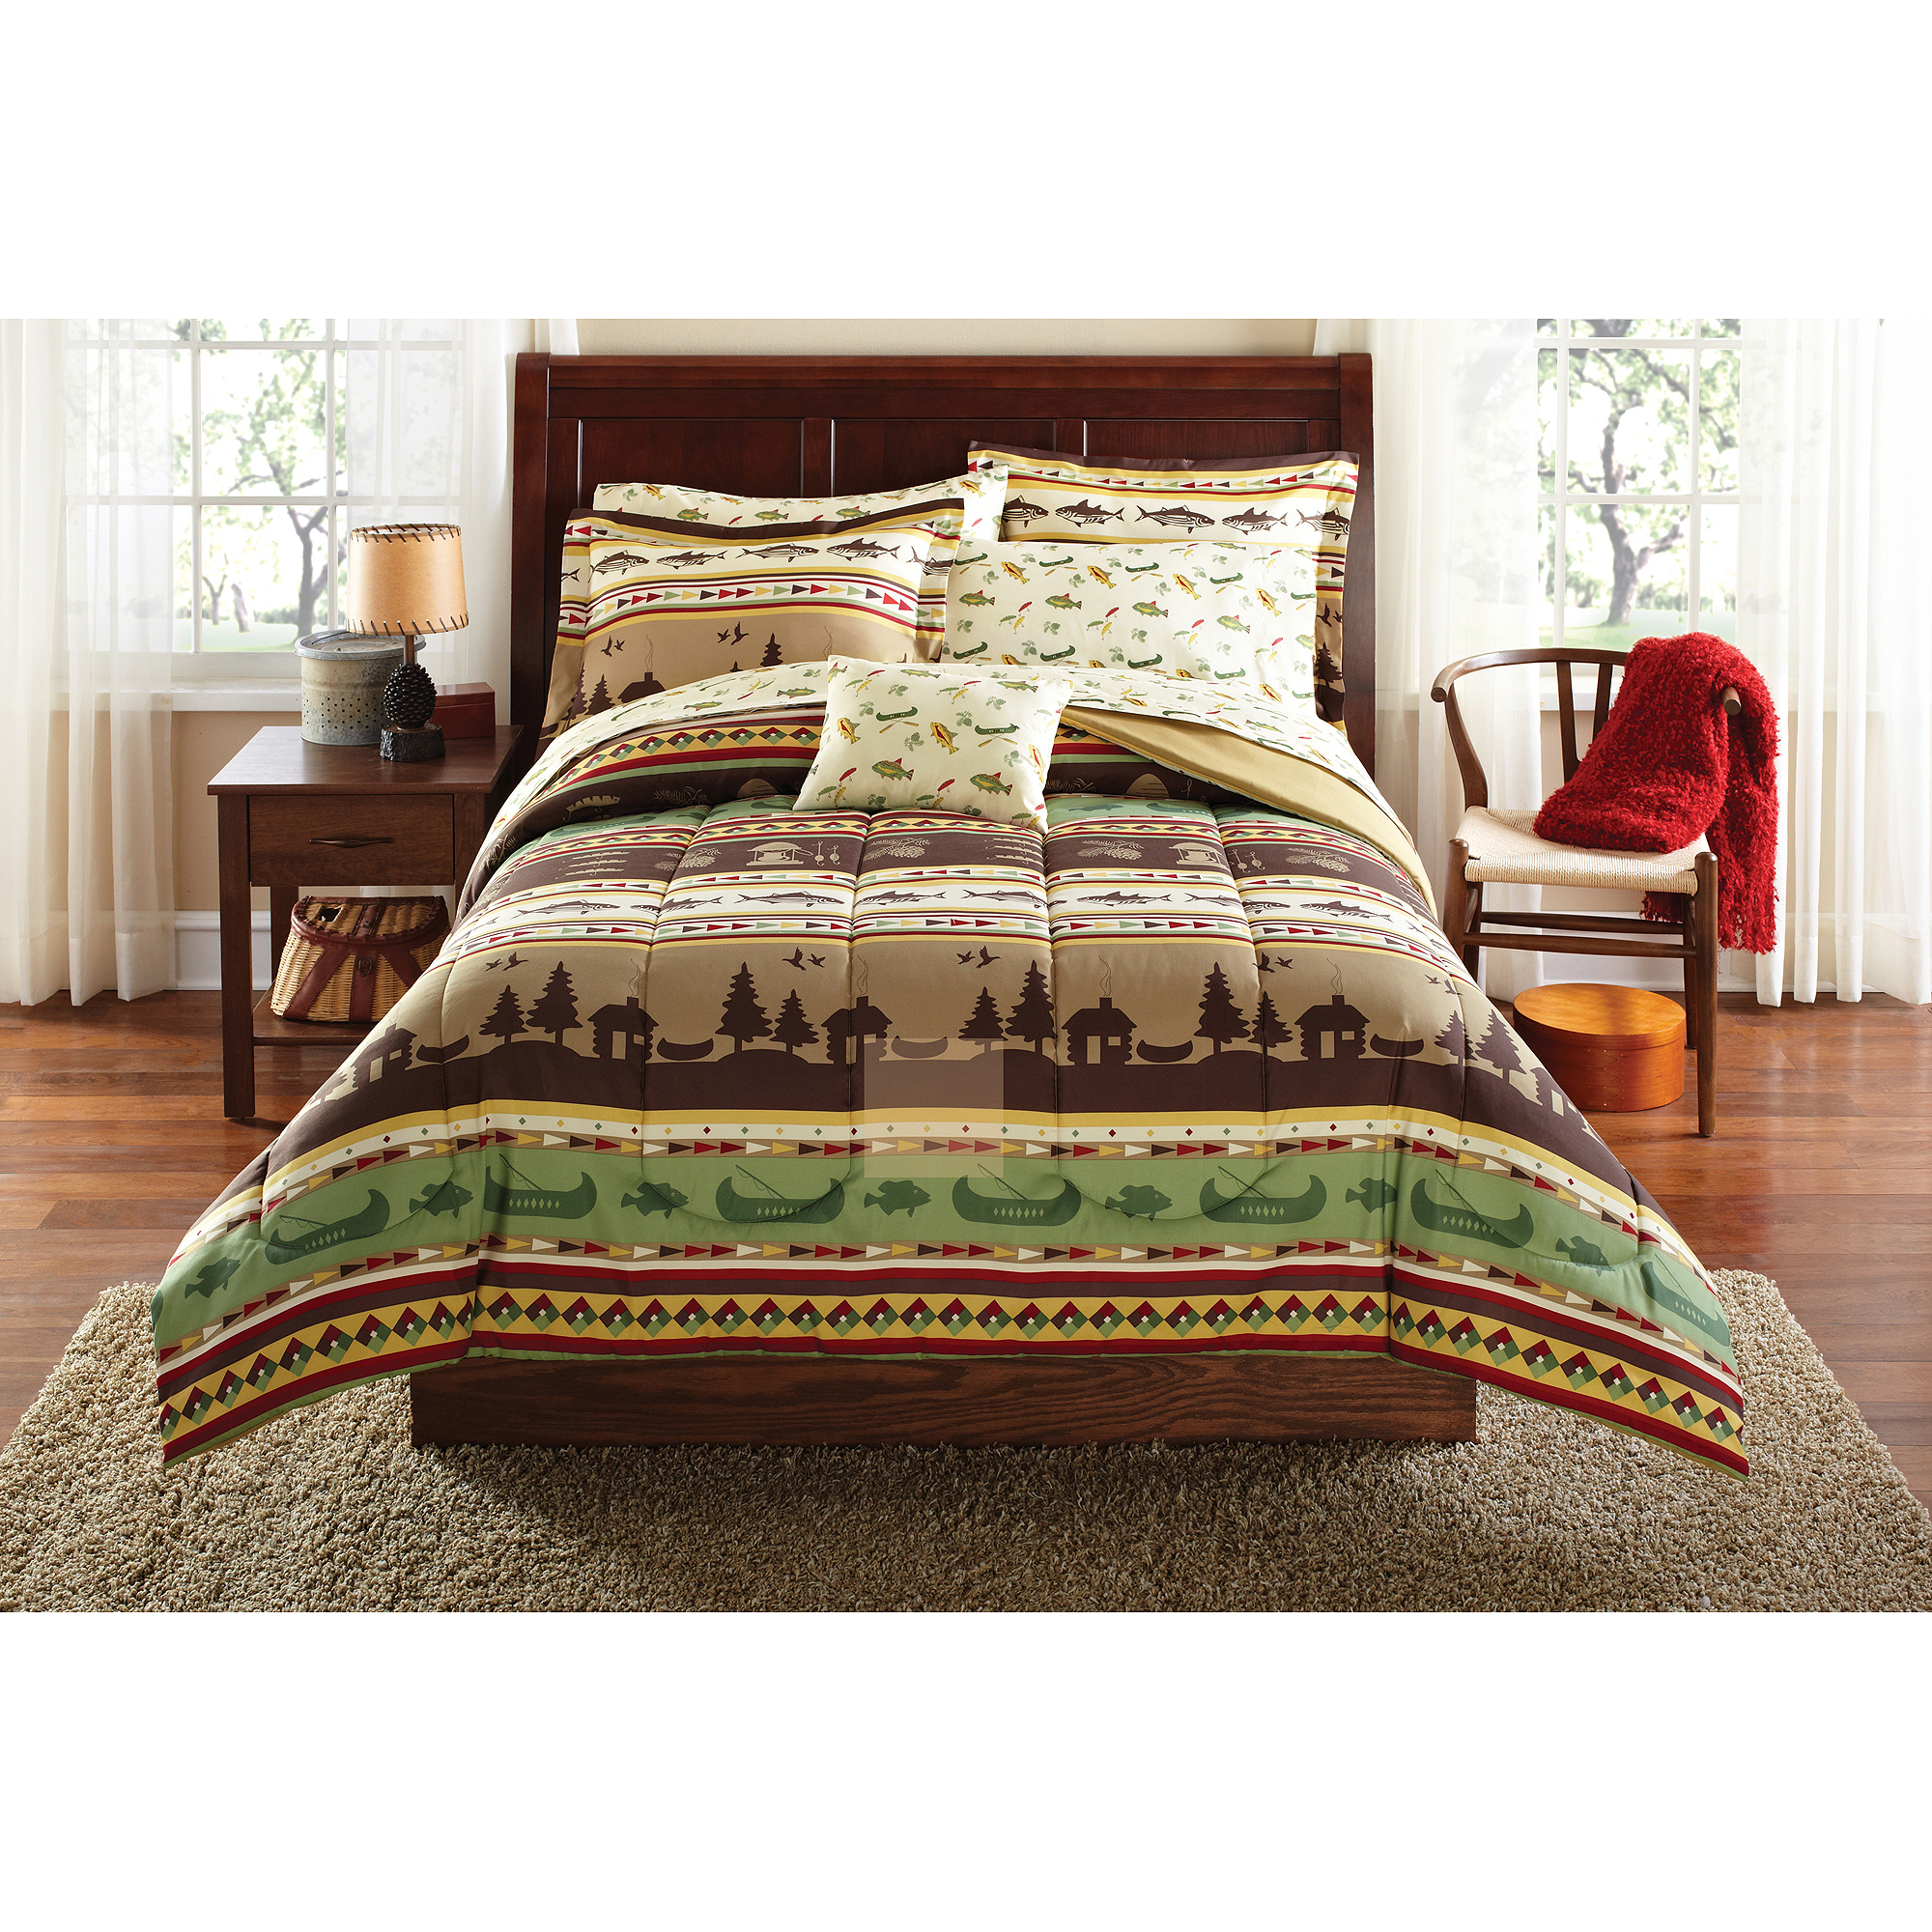 Mainstays Gone Fishing Bed in a Bag Coordinating Bedding Set